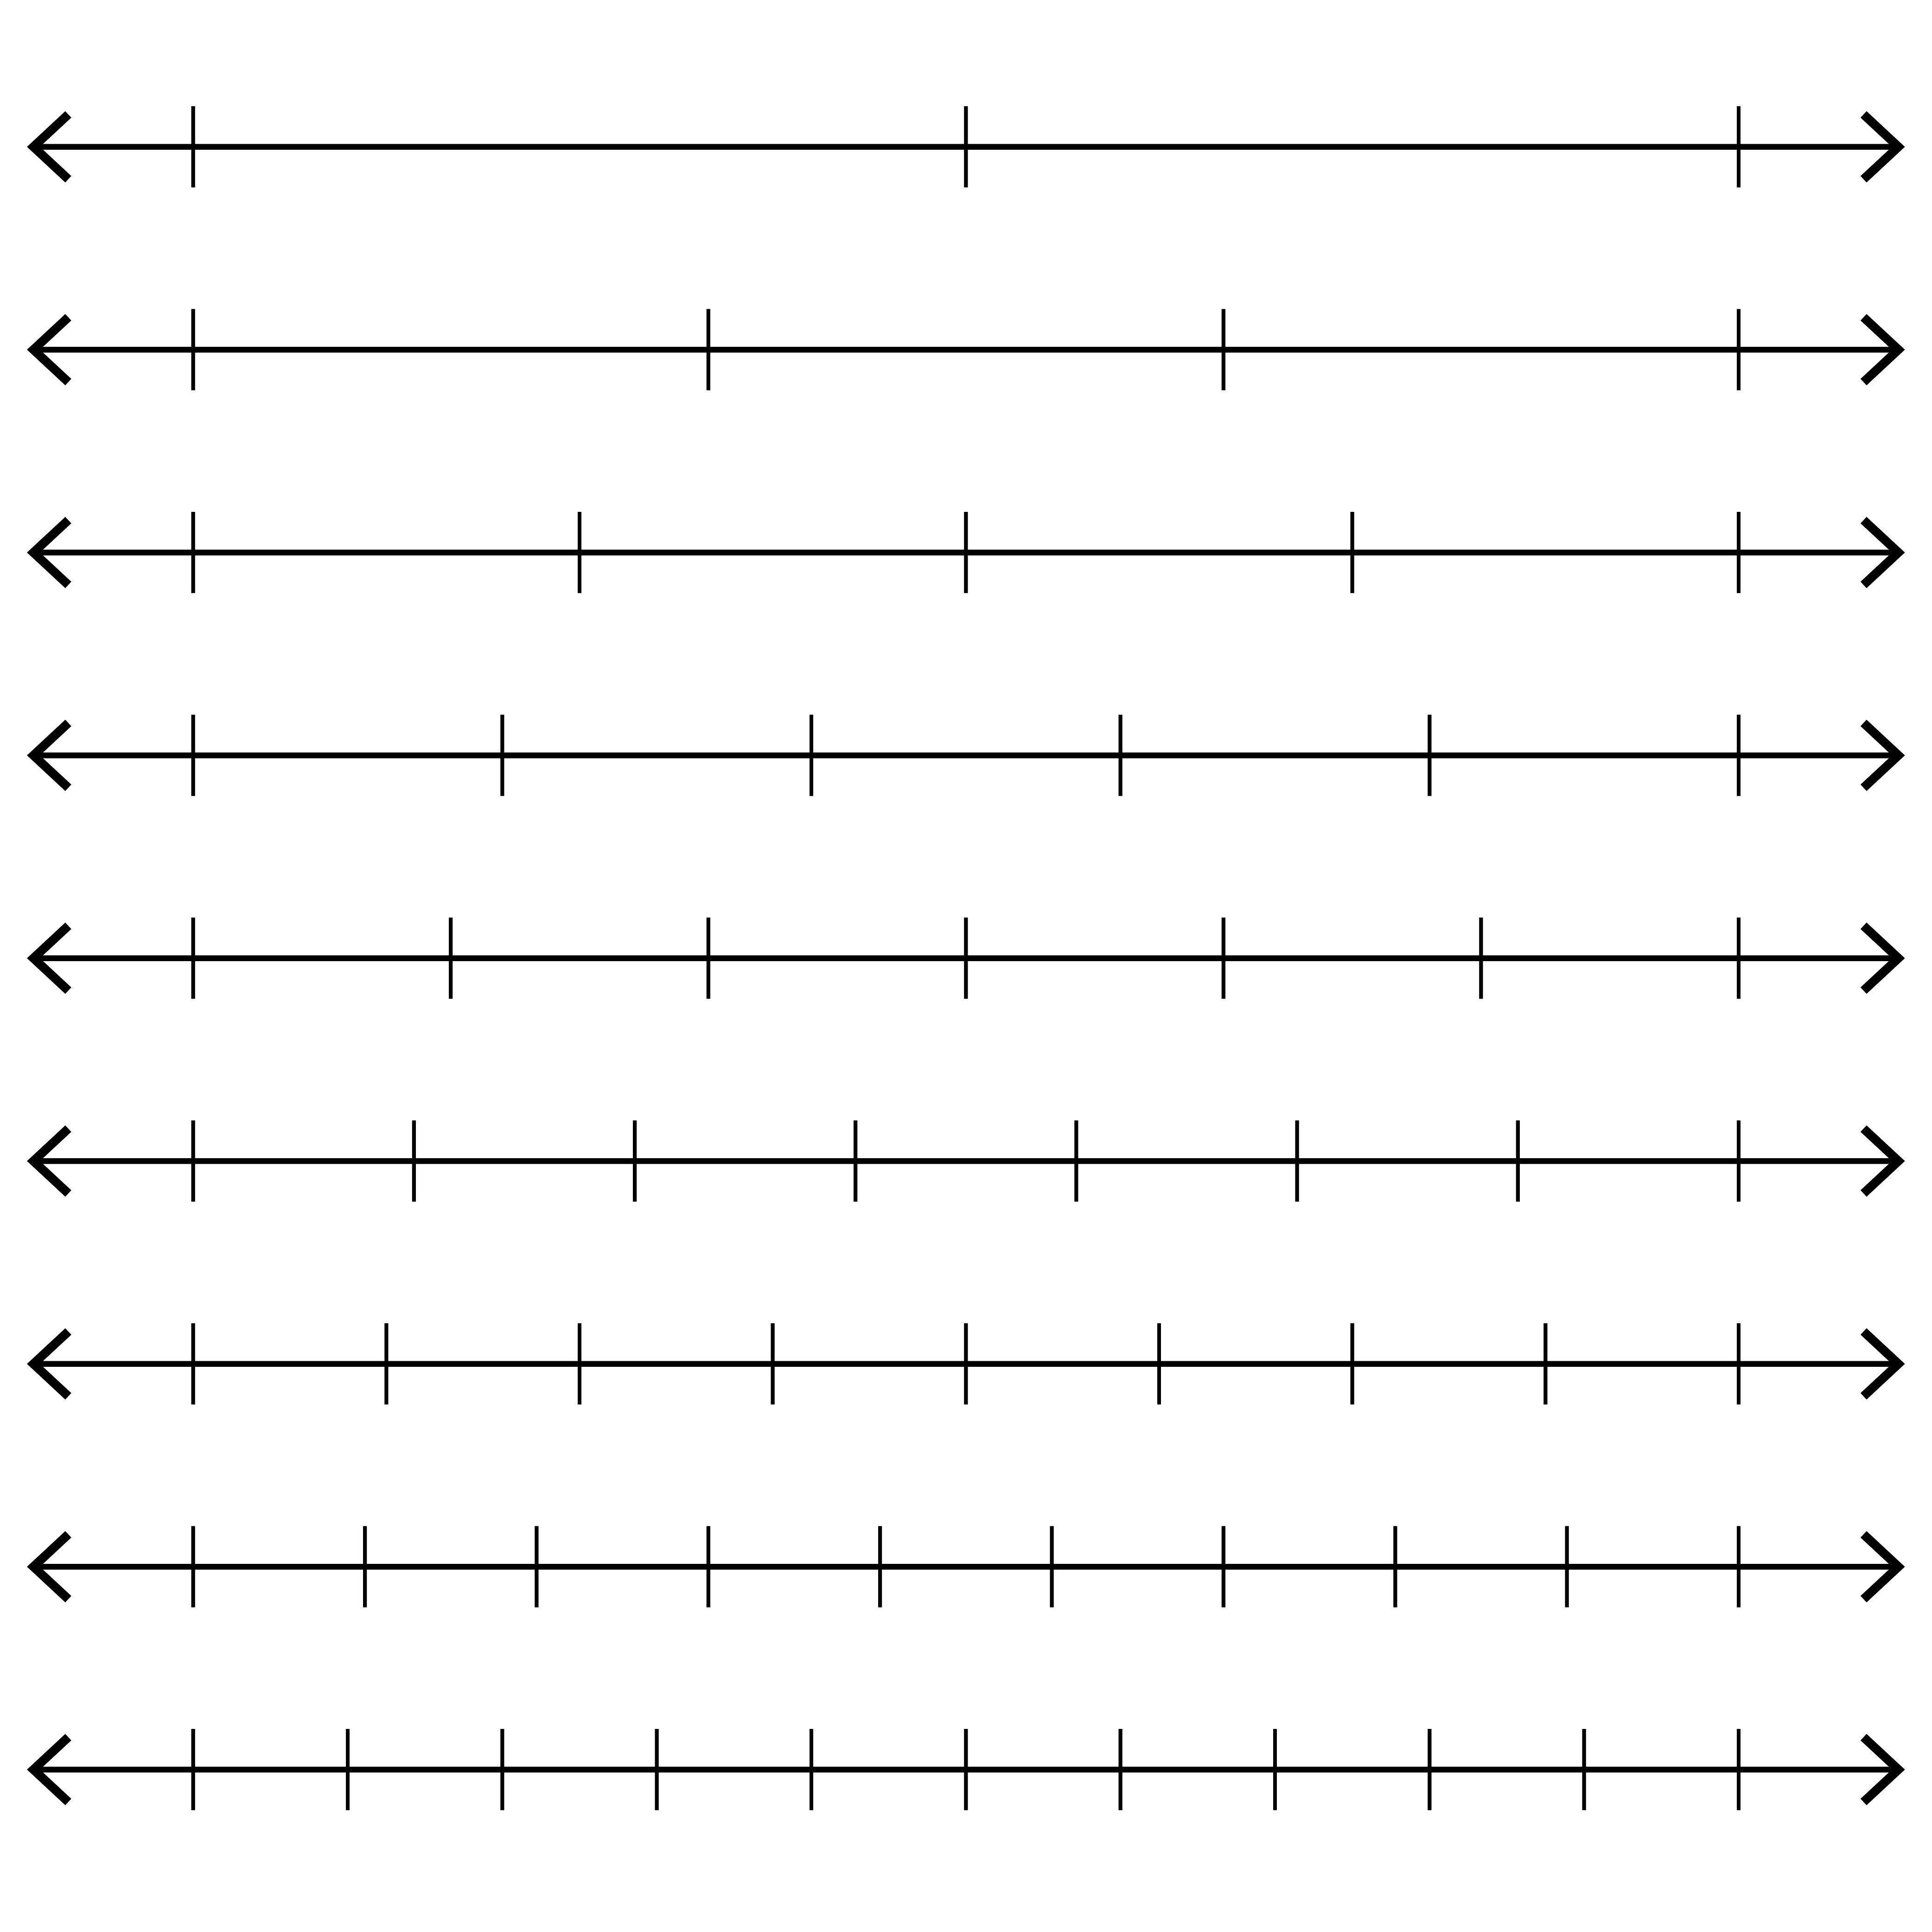 Clever image with printable blank number lines